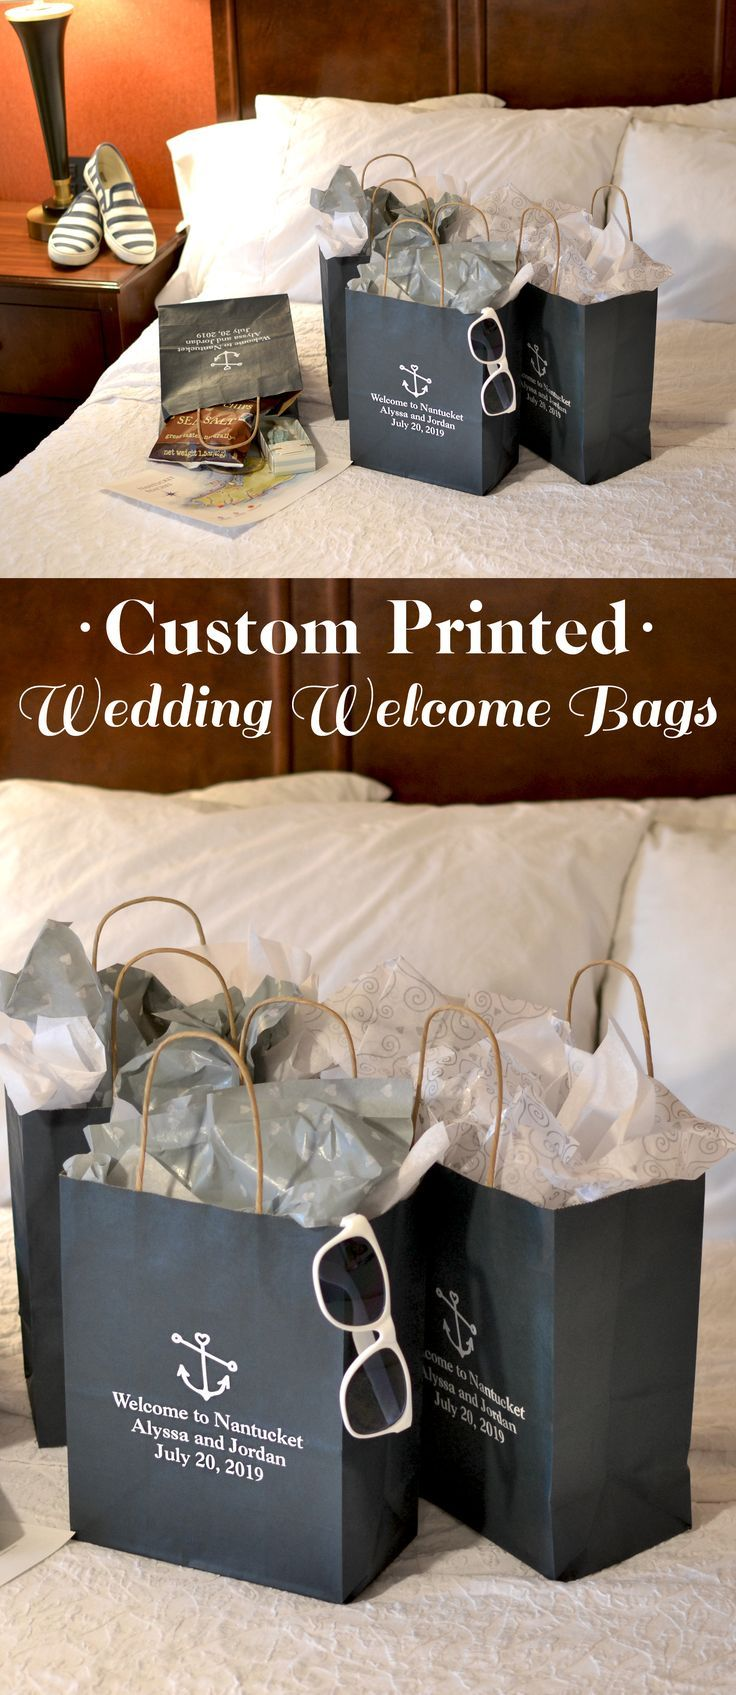 ... wedding hotel guest gift bags wedding fill wedding bags town wedding